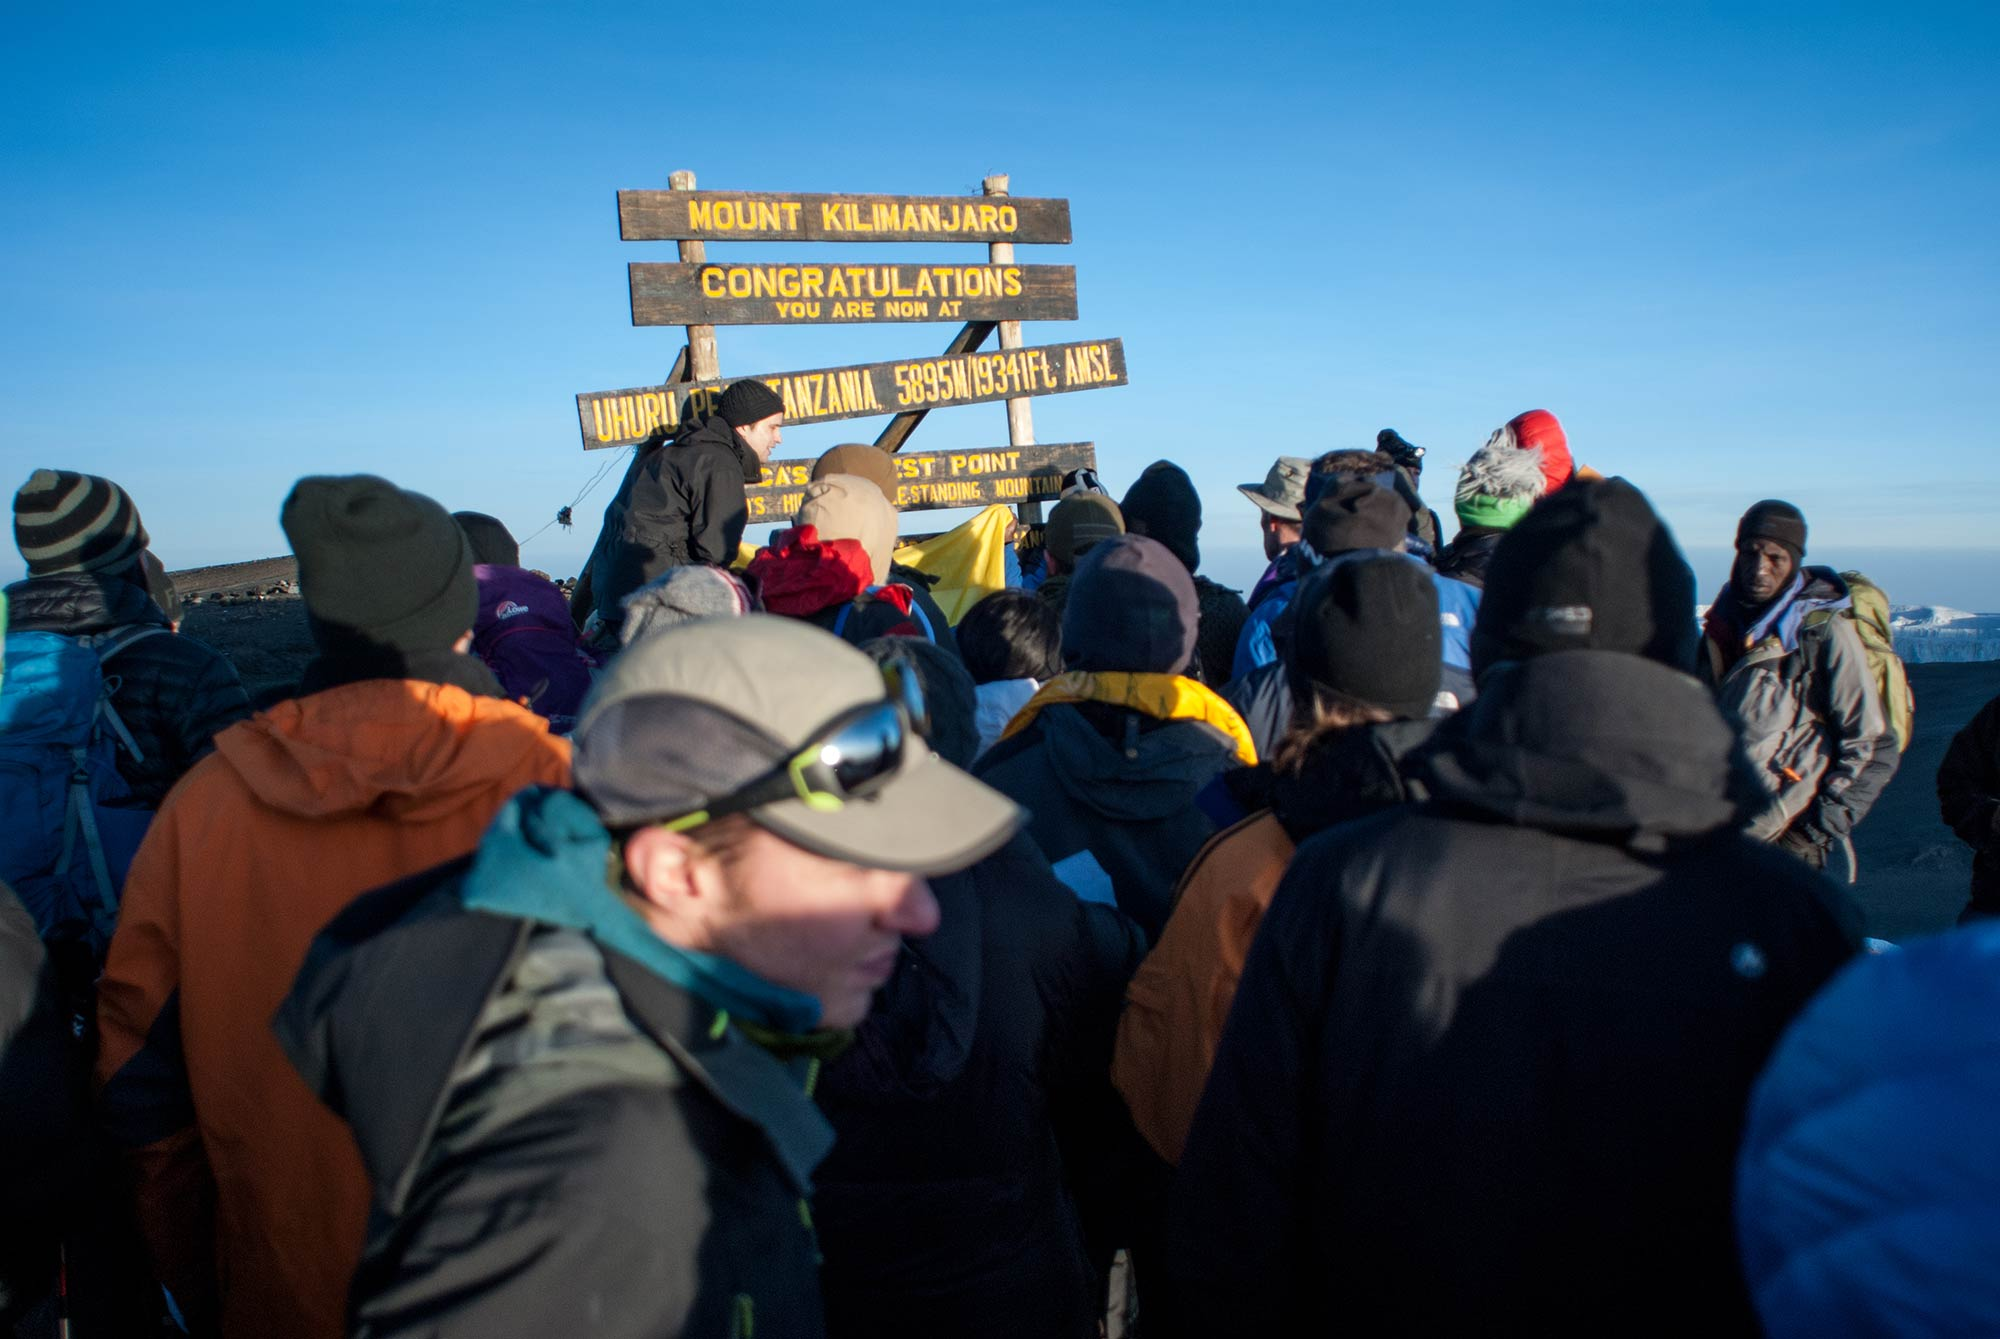 A crowded summit on Kilimanjaro put me in a frustrated mood.